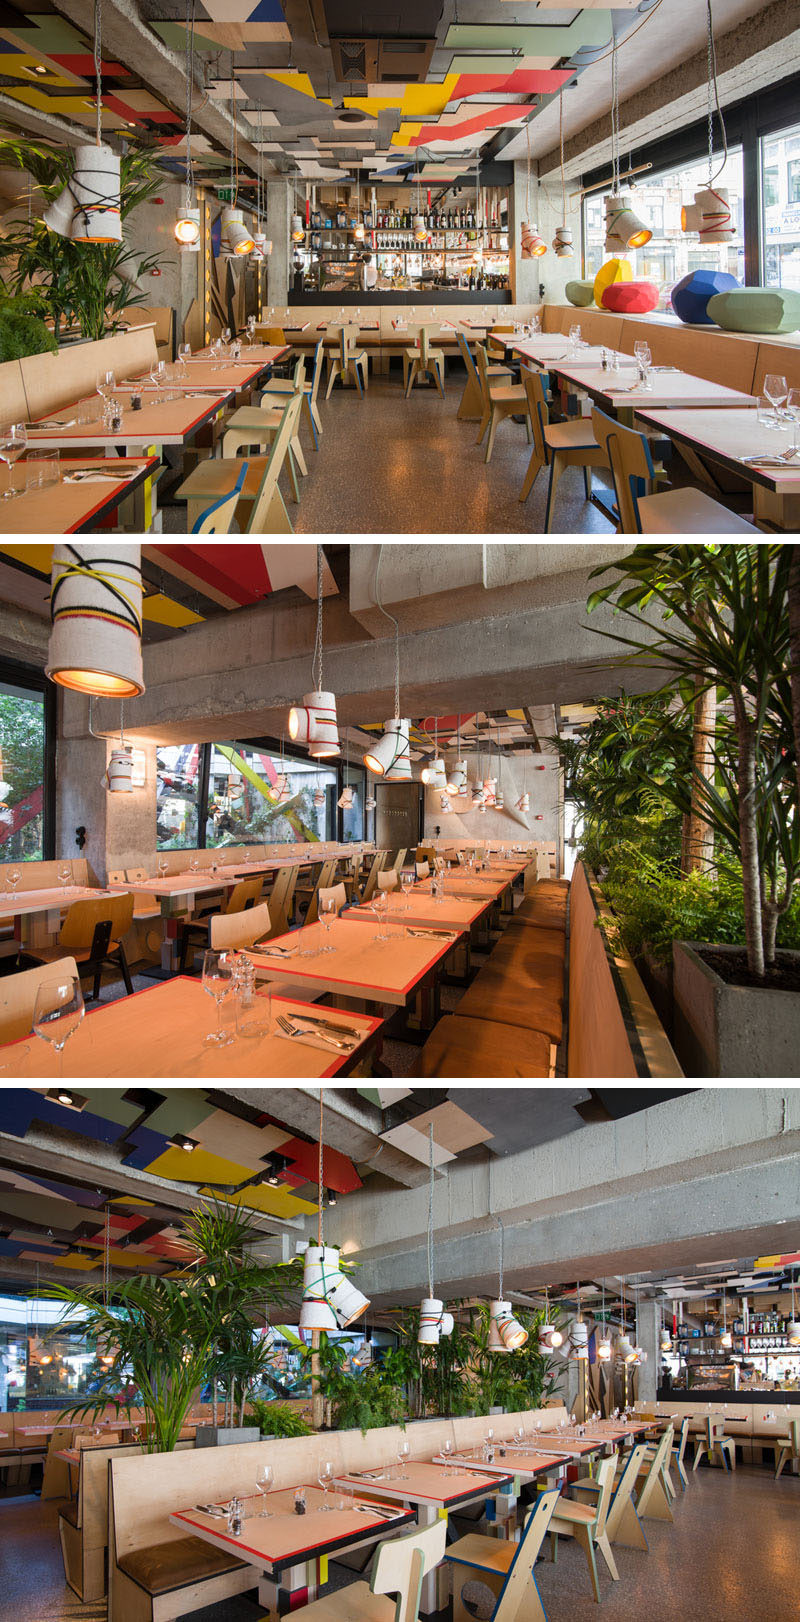 This restaurant serves pizza and pasta under a canopy of colorful ceiling details.